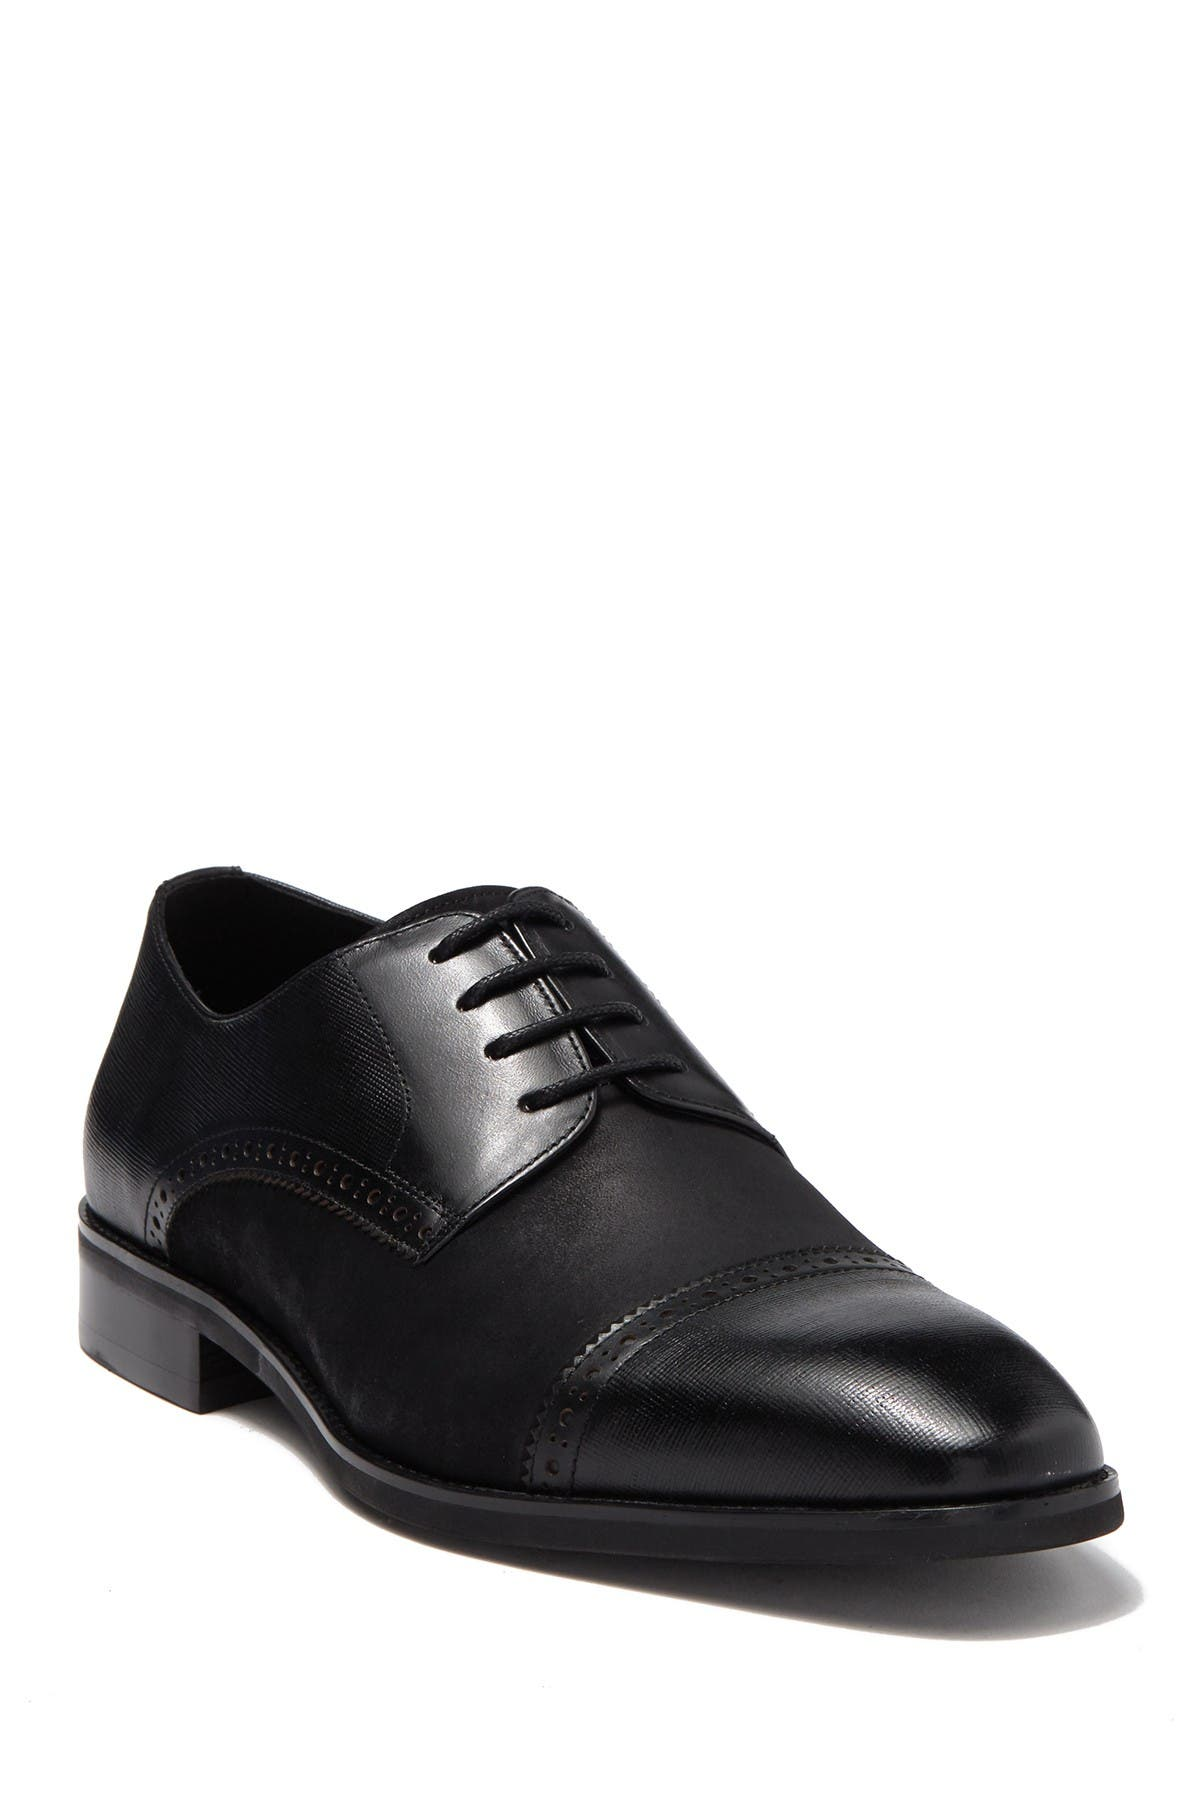 Image of Karl Lagerfeld Paris Contrast Cap Toe Dress Shoe